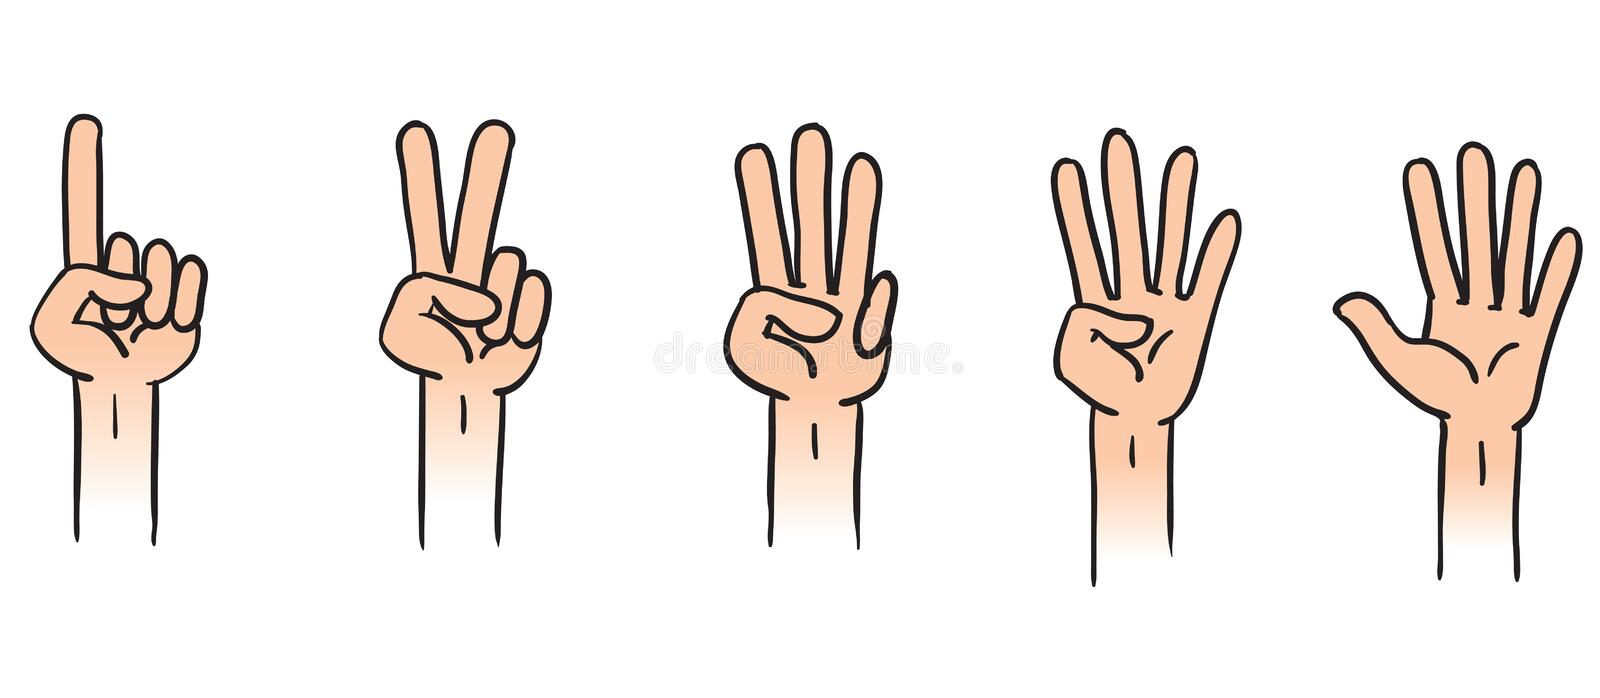 Counting hands stock illustration